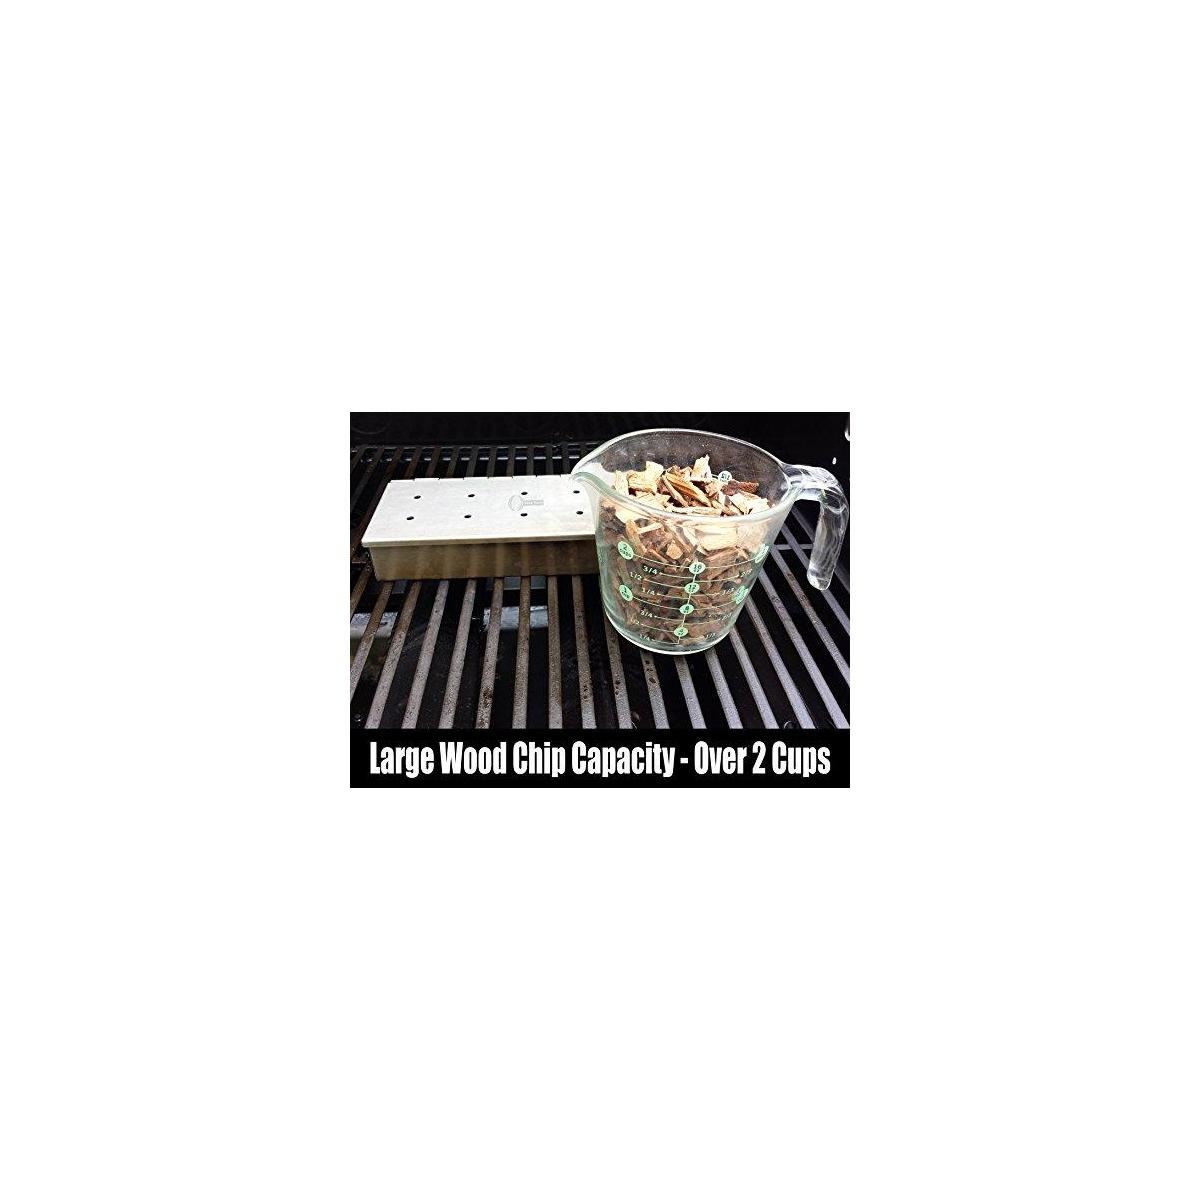 Kabob Skewers + Smoker Box for BBQ Grill Wood Chips - 25% Thicker Stainless Steel Won't Warp - Charcoal and Gas Barbecue Meat Smoking with Hinged Lid - Grilling Accessories Utensils Gift for Dad